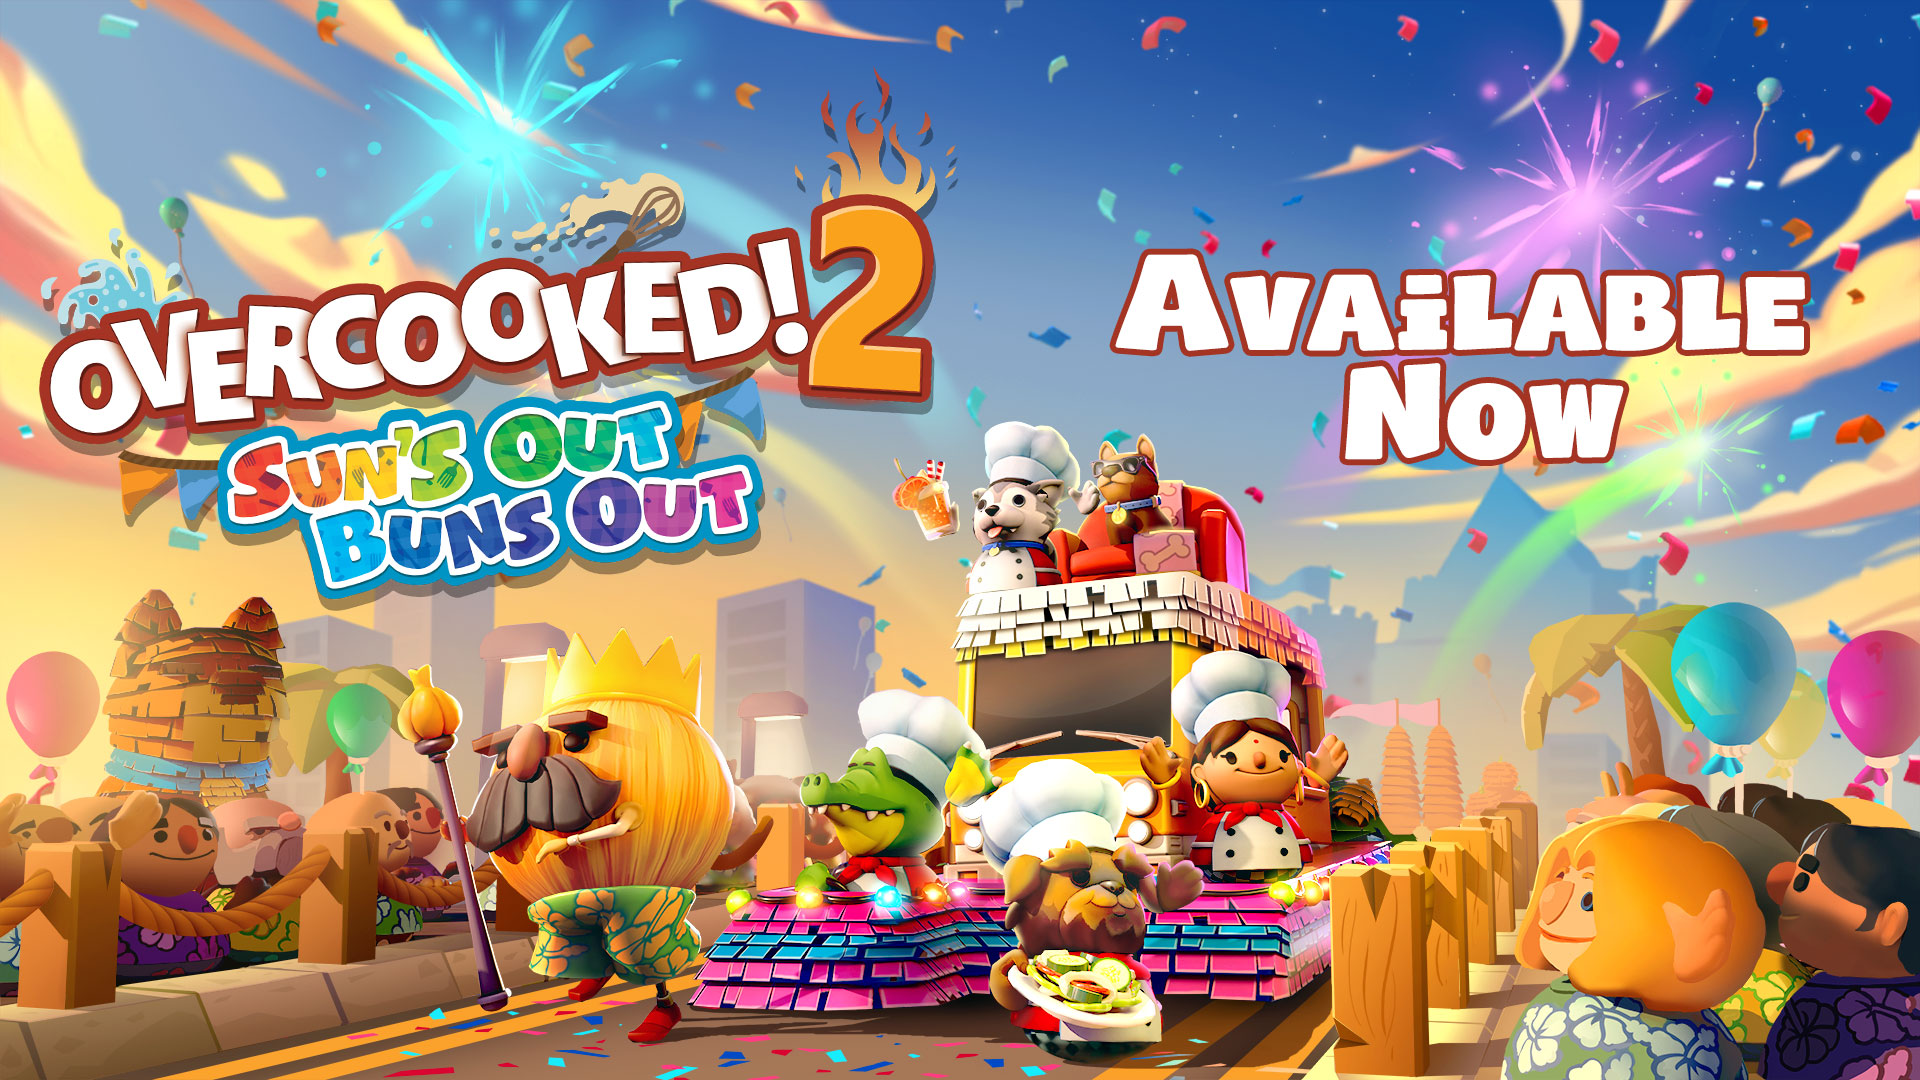 Overcooked! 2: Suns Out, Buns Out Update – Available Now!